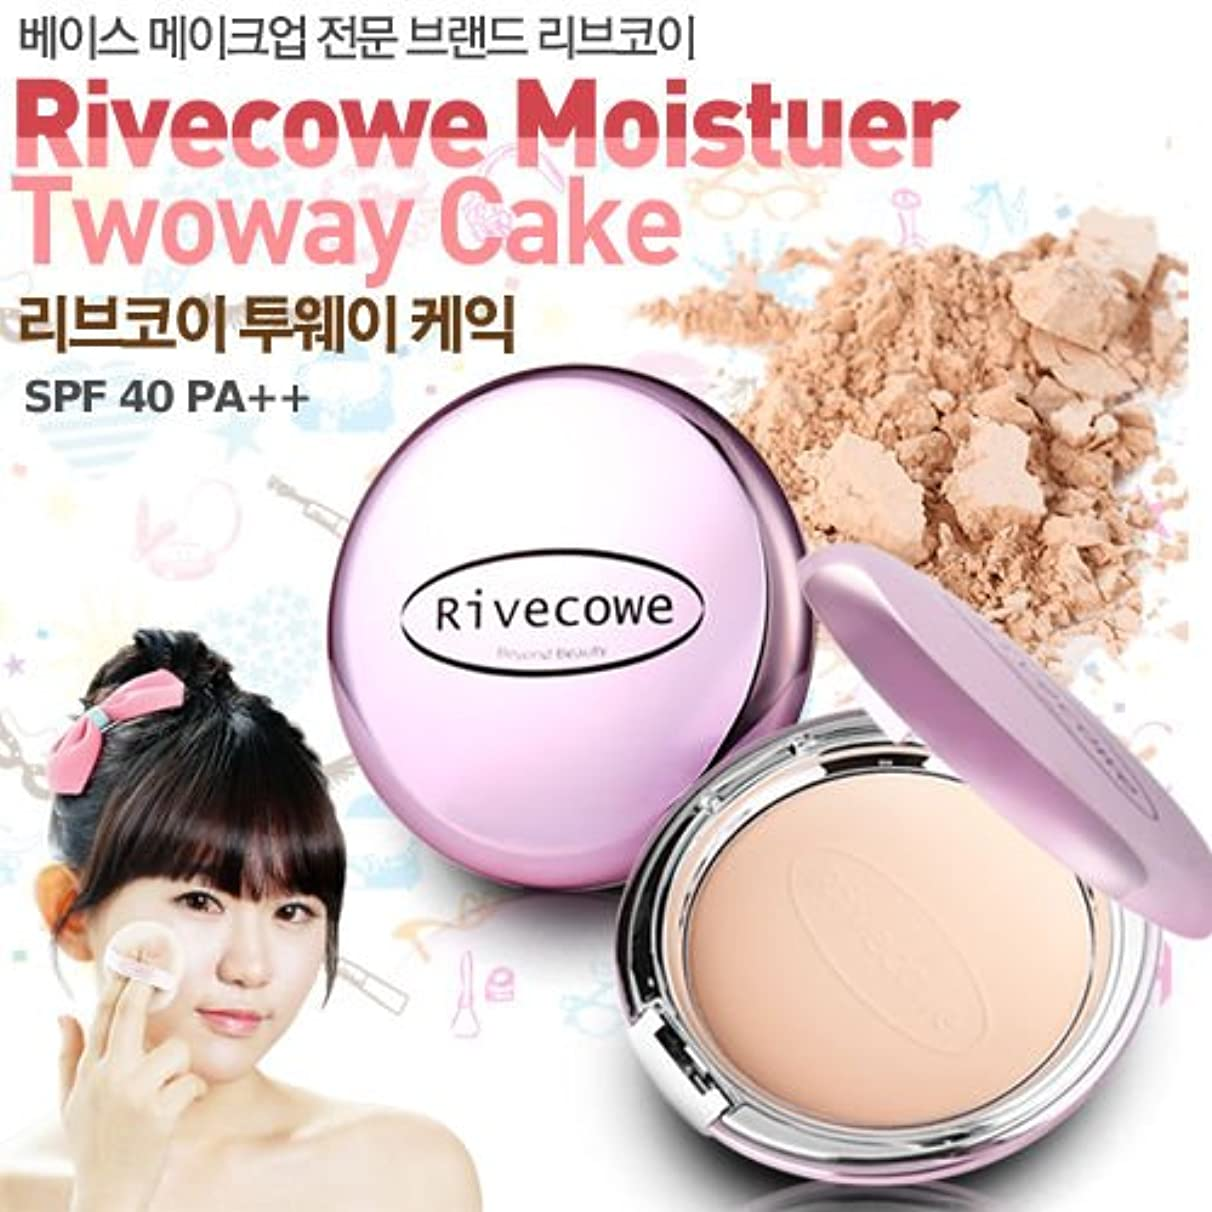 作物ヒロイックそこRivecowe Moisture Twoway Cake (Foundation + Powder) SPF40PA++ 12g (No. 21 Natural Beige) [並行輸入品]